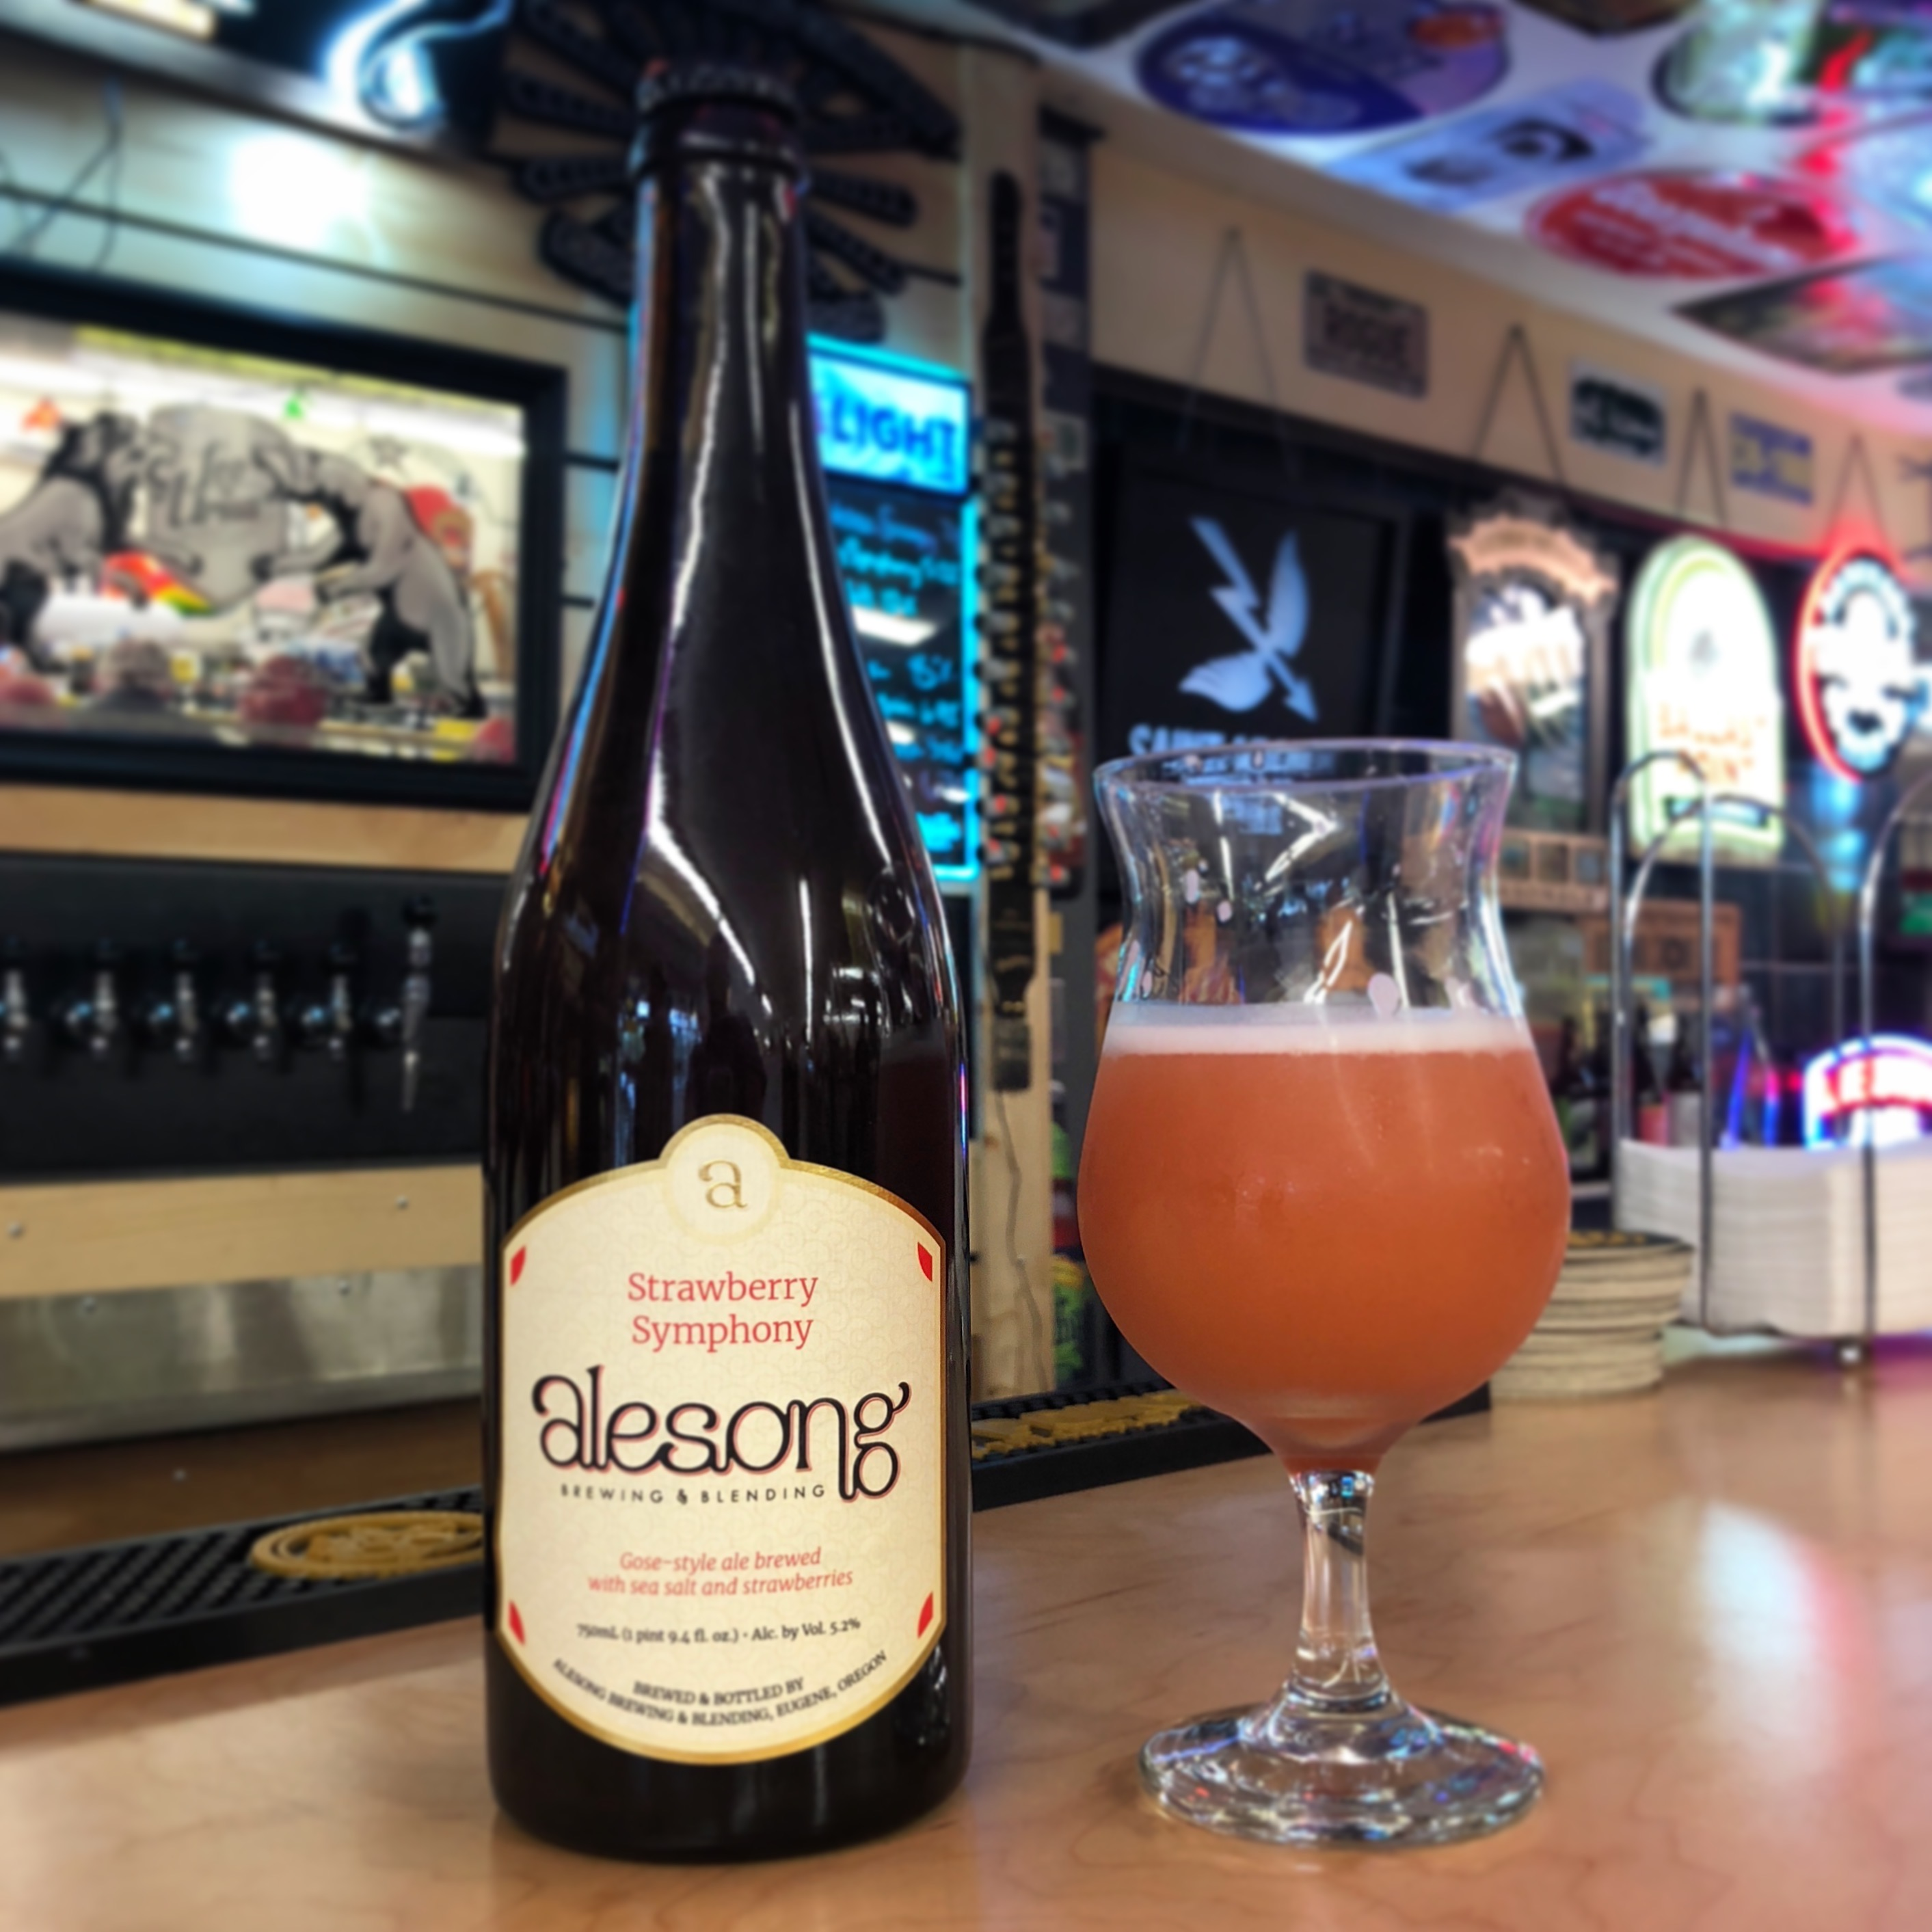 Earlier this year John's Marketplace added taps to its cozy deli and feature Friday night tastings of beer, cider and wine. We made a visit when Alesong Brewing was there and had its Strawberry Symphony.